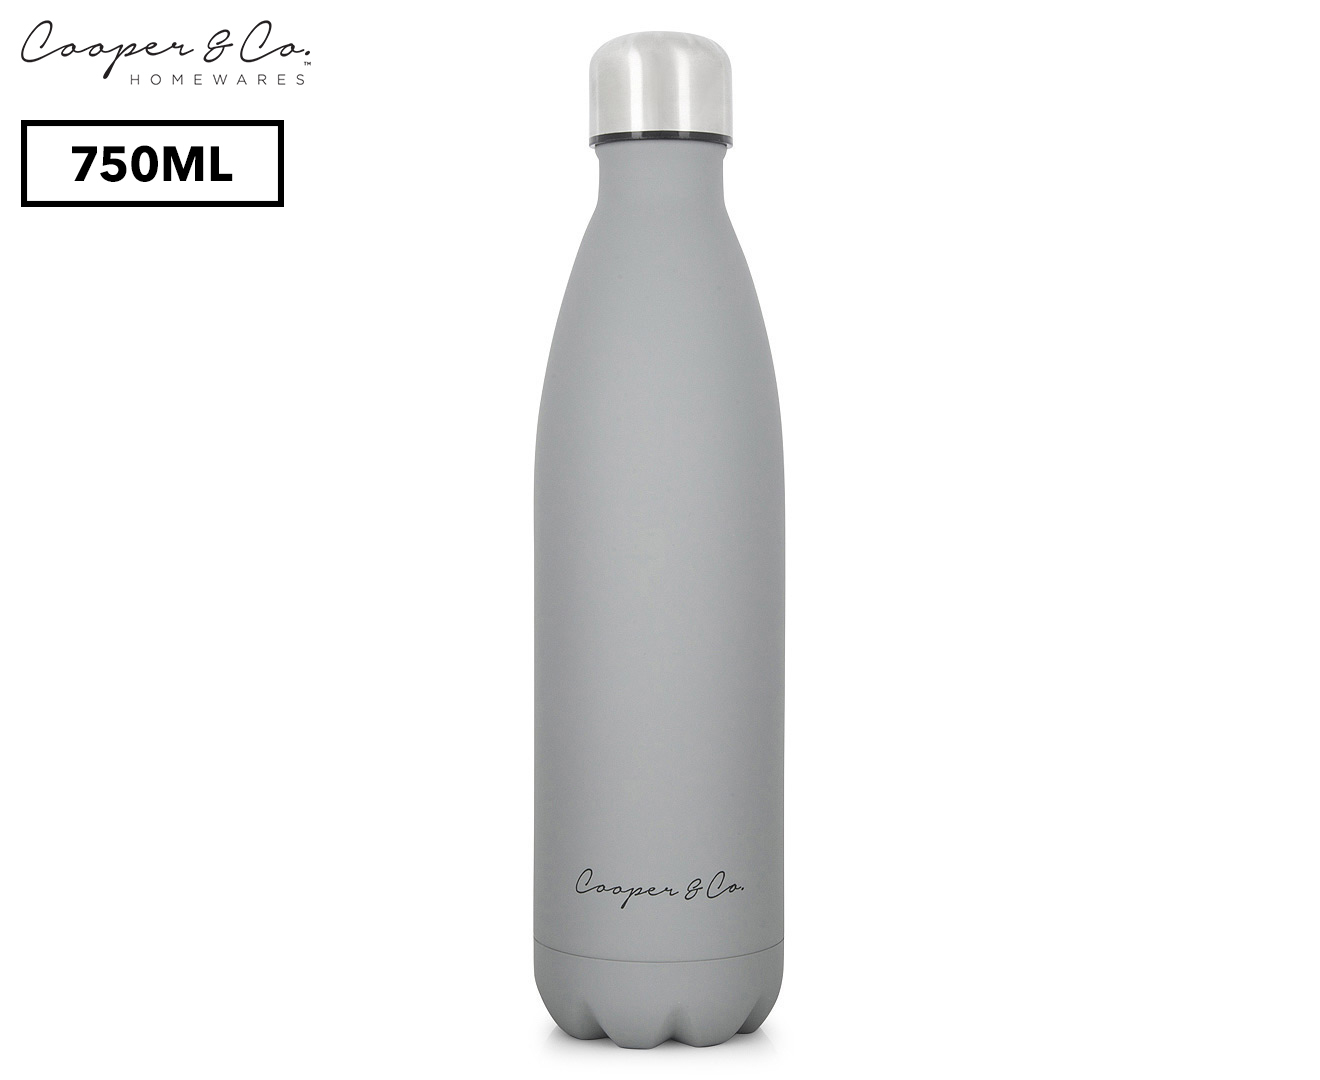 Cooper Co Insulated Drink Bottles